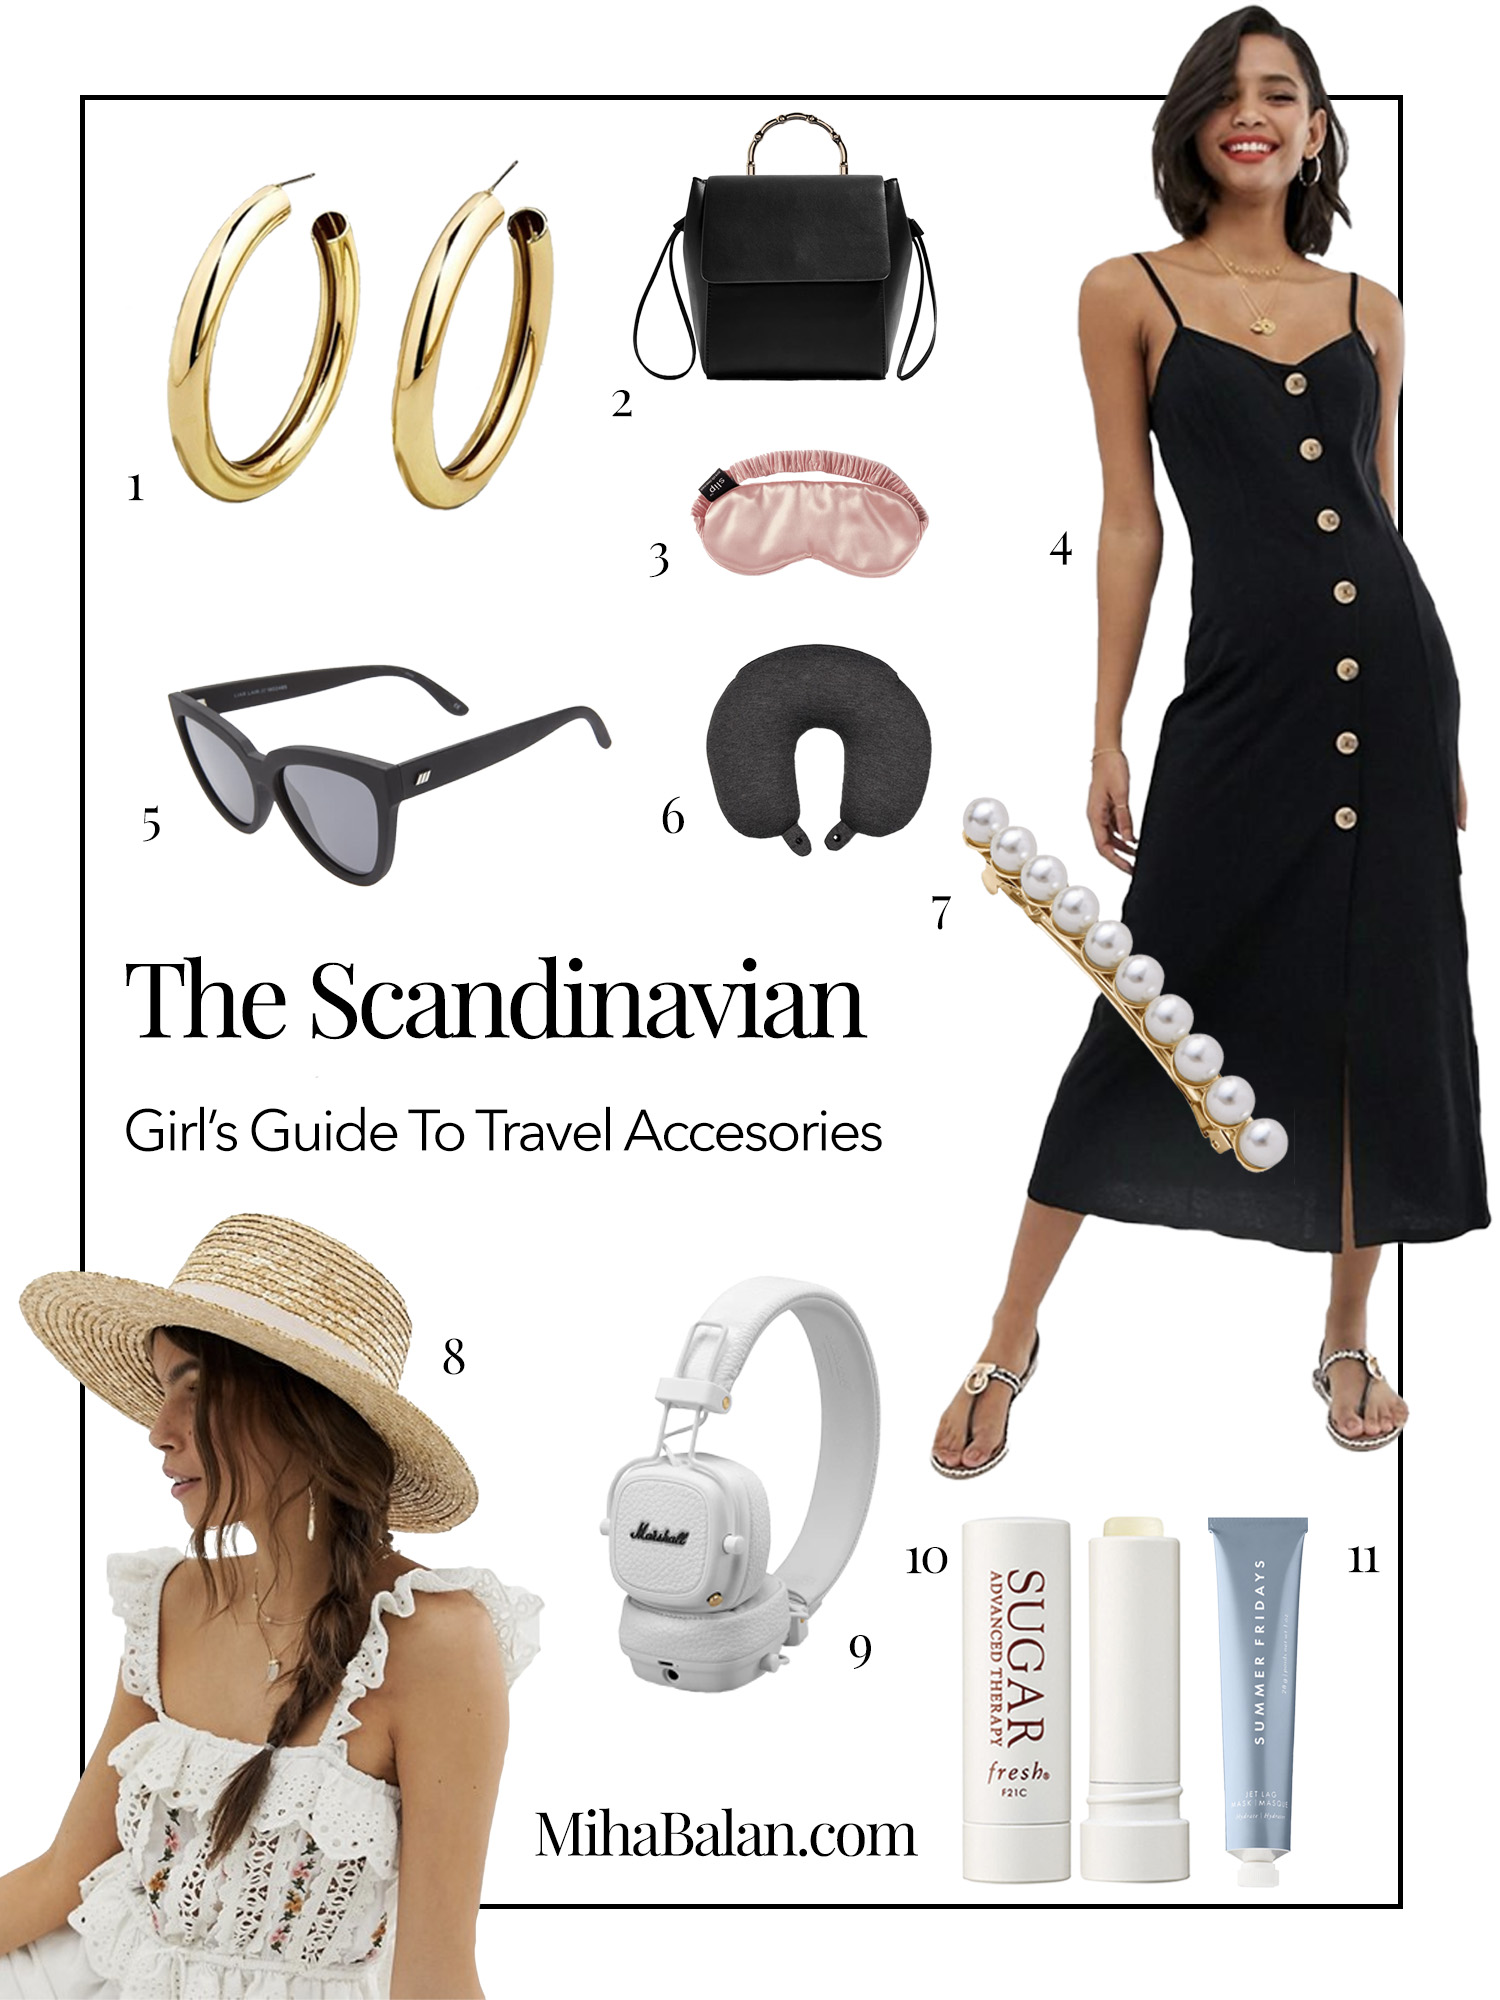 A-Scandinavian-Girls-guide-to-travel-accessories-essential-travel-accessories-glasses-passport-holder